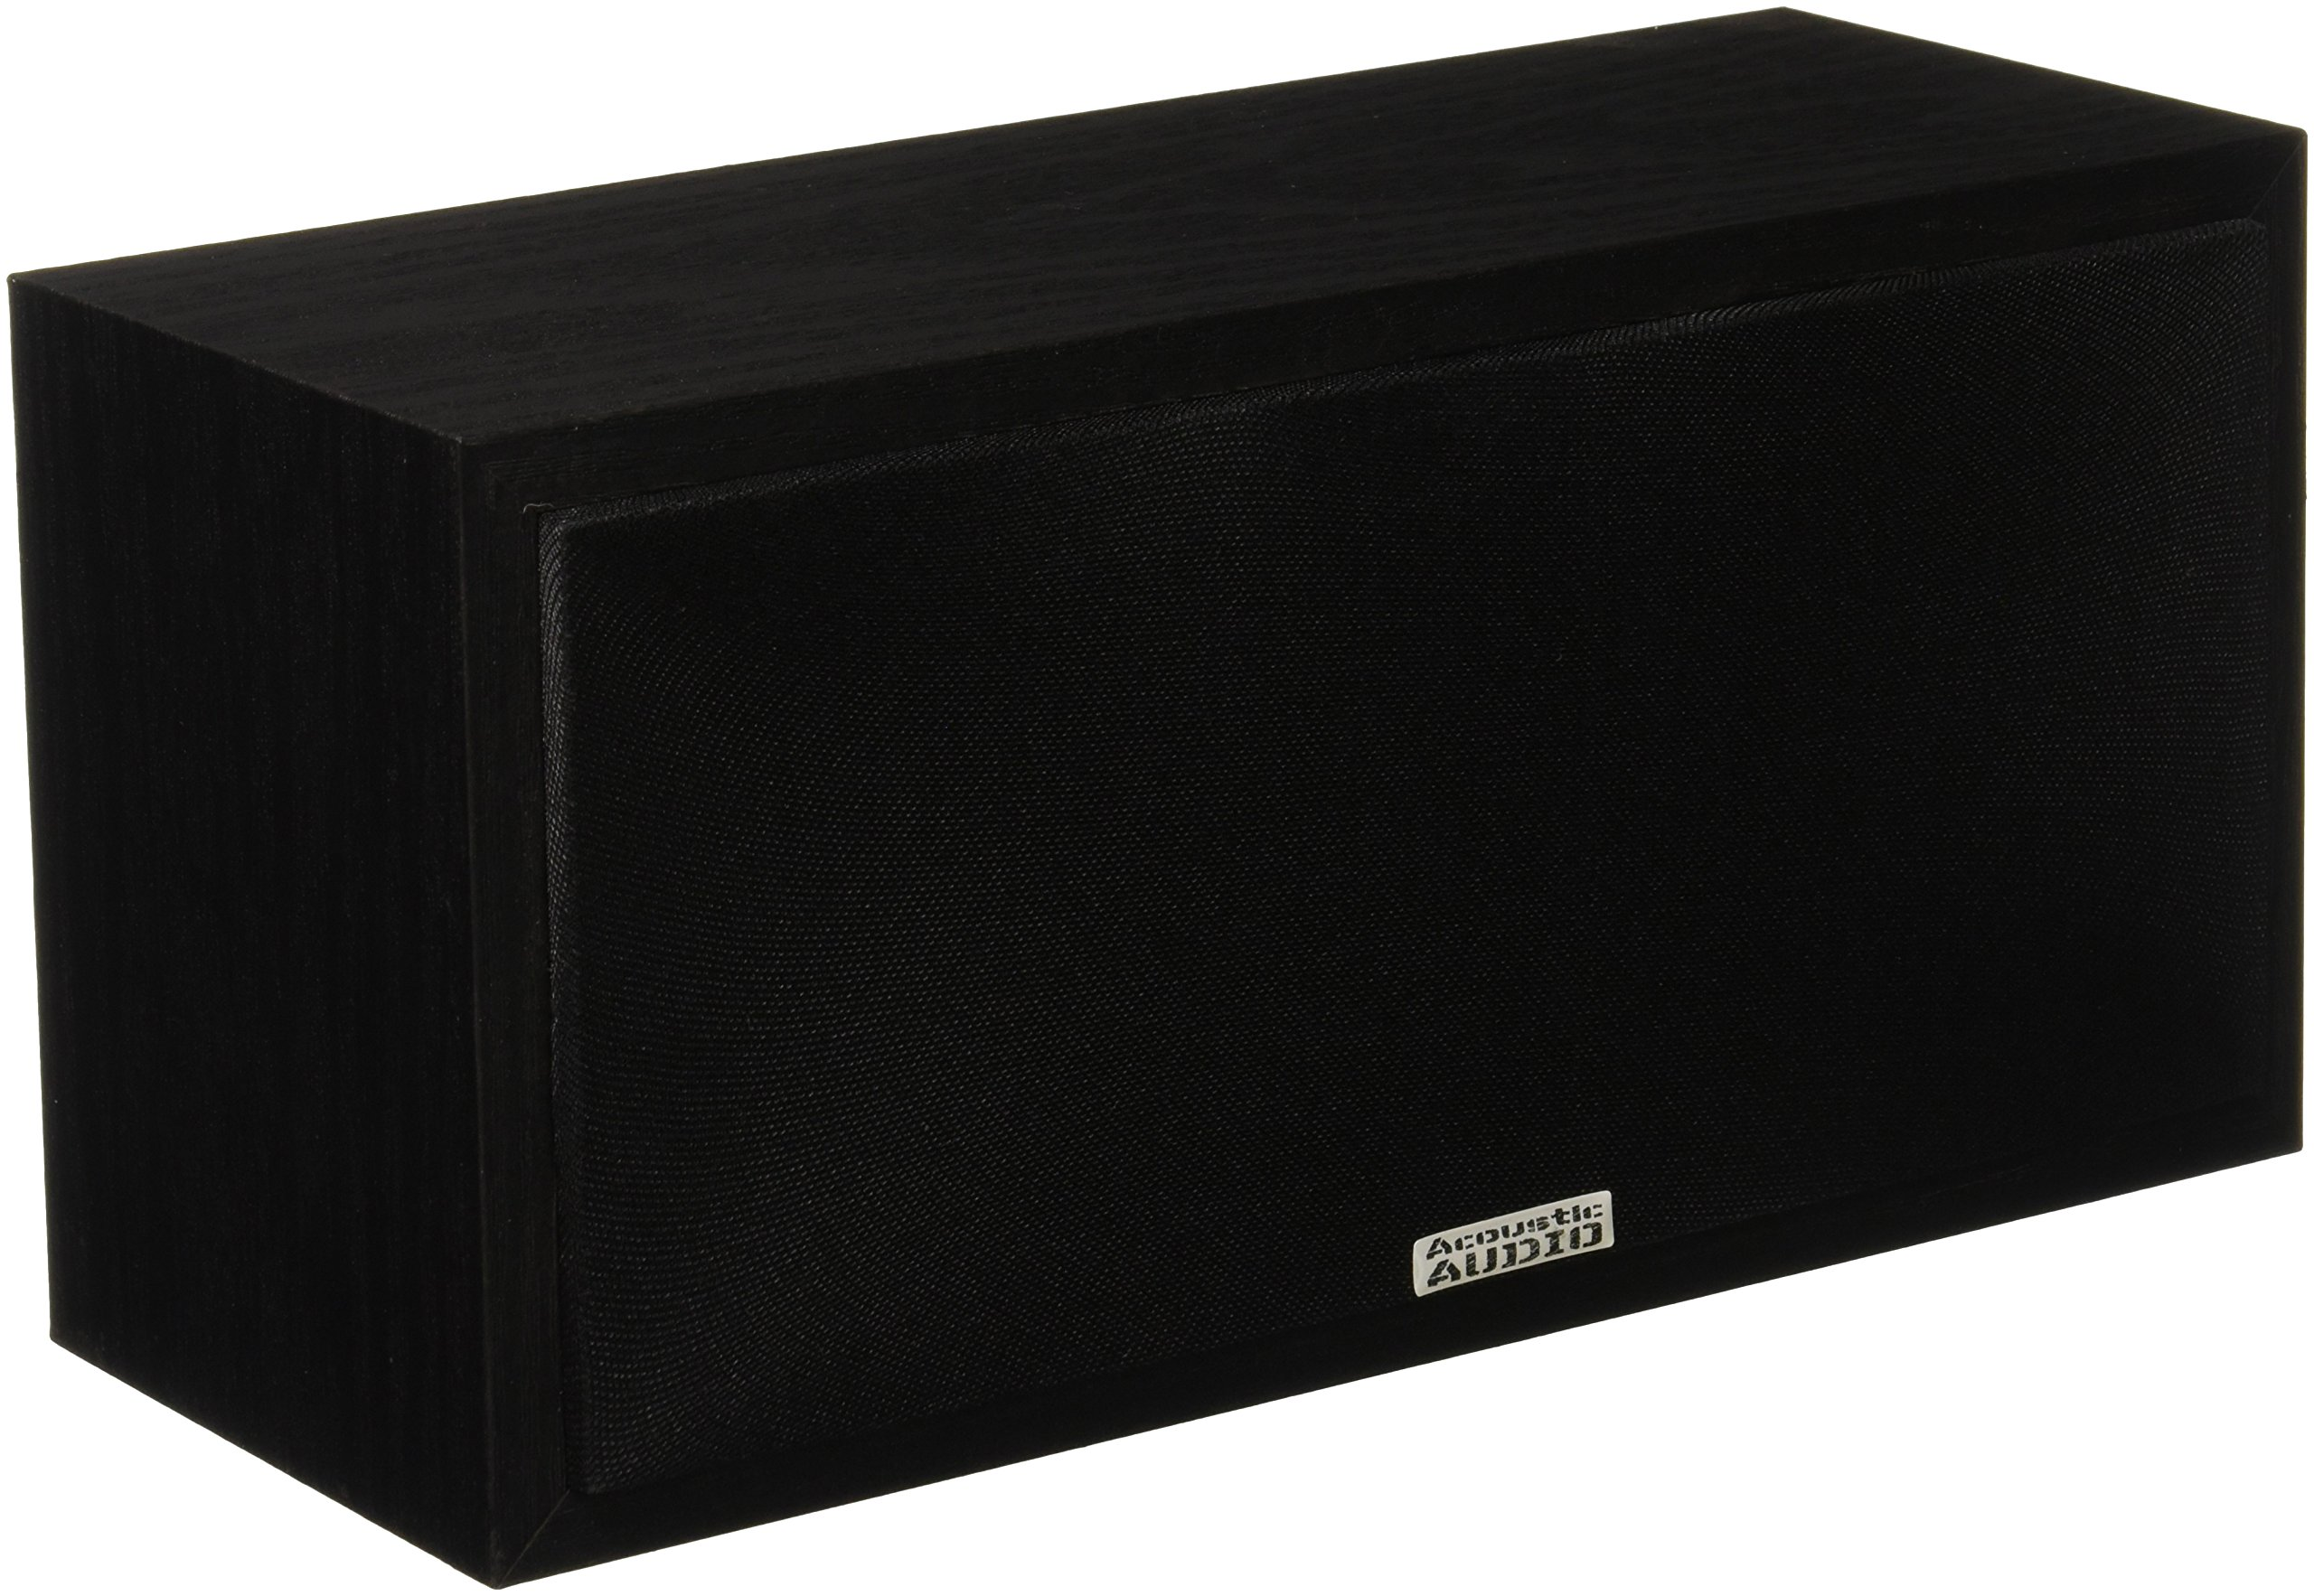 Acoustic Audio PSC-32 Center Channel Speaker (Black) by Acoustic Audio by Goldwood